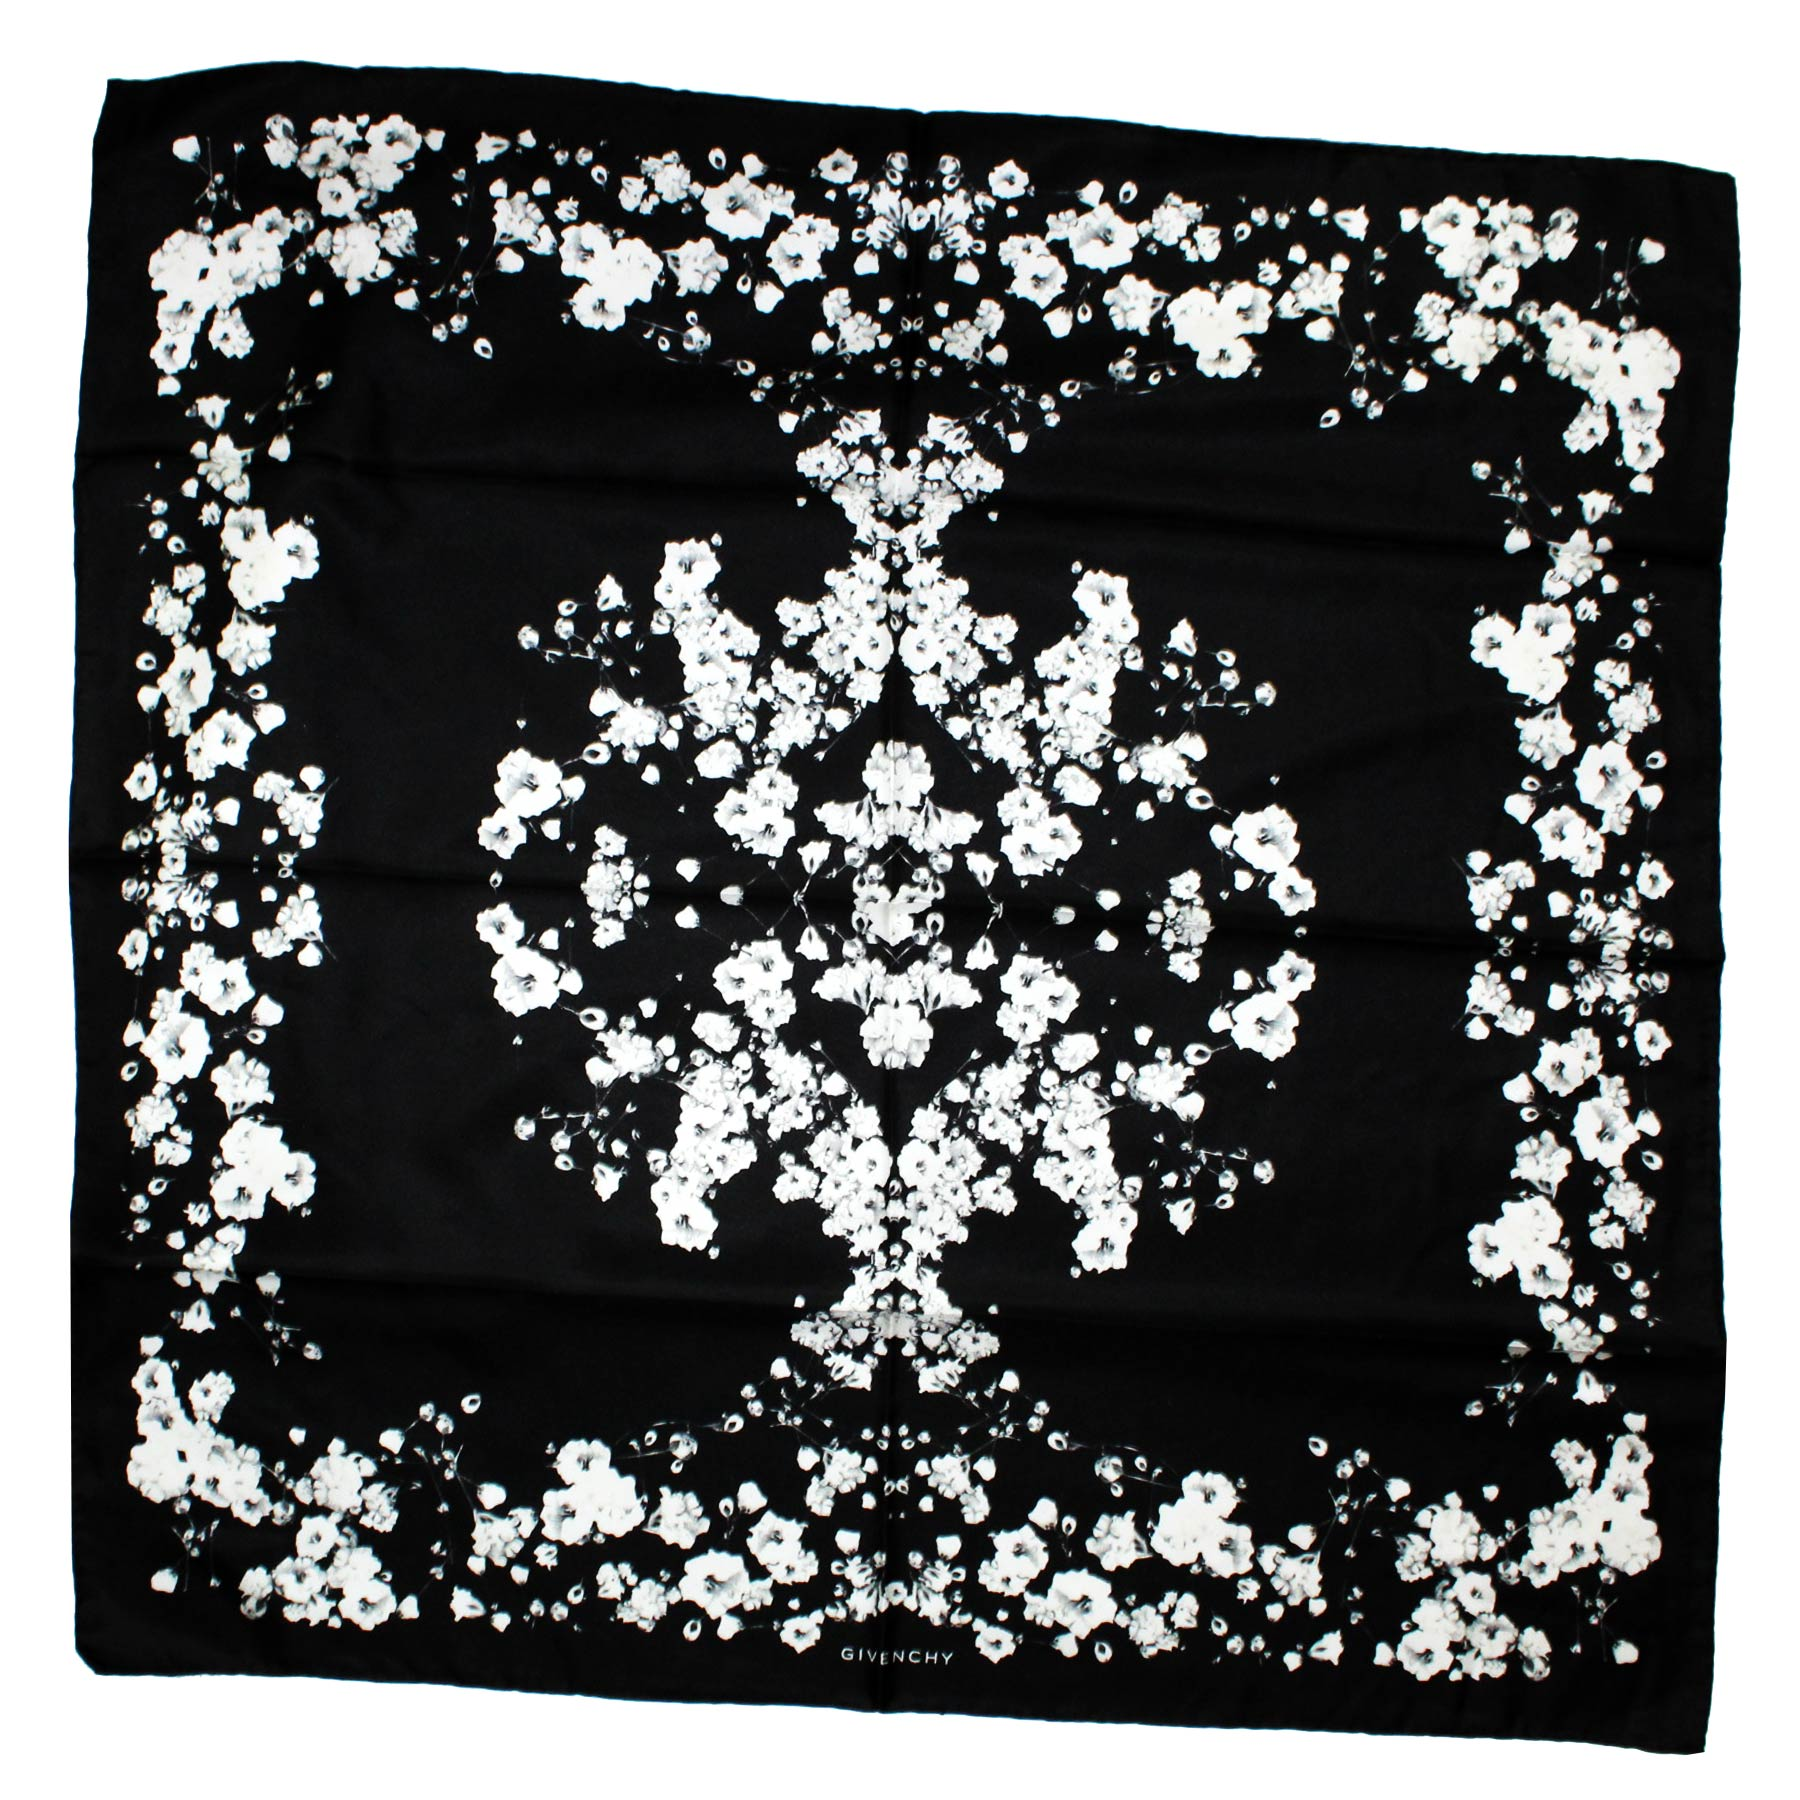 Givenchy Scarf Twill Silk Large Square Scarf